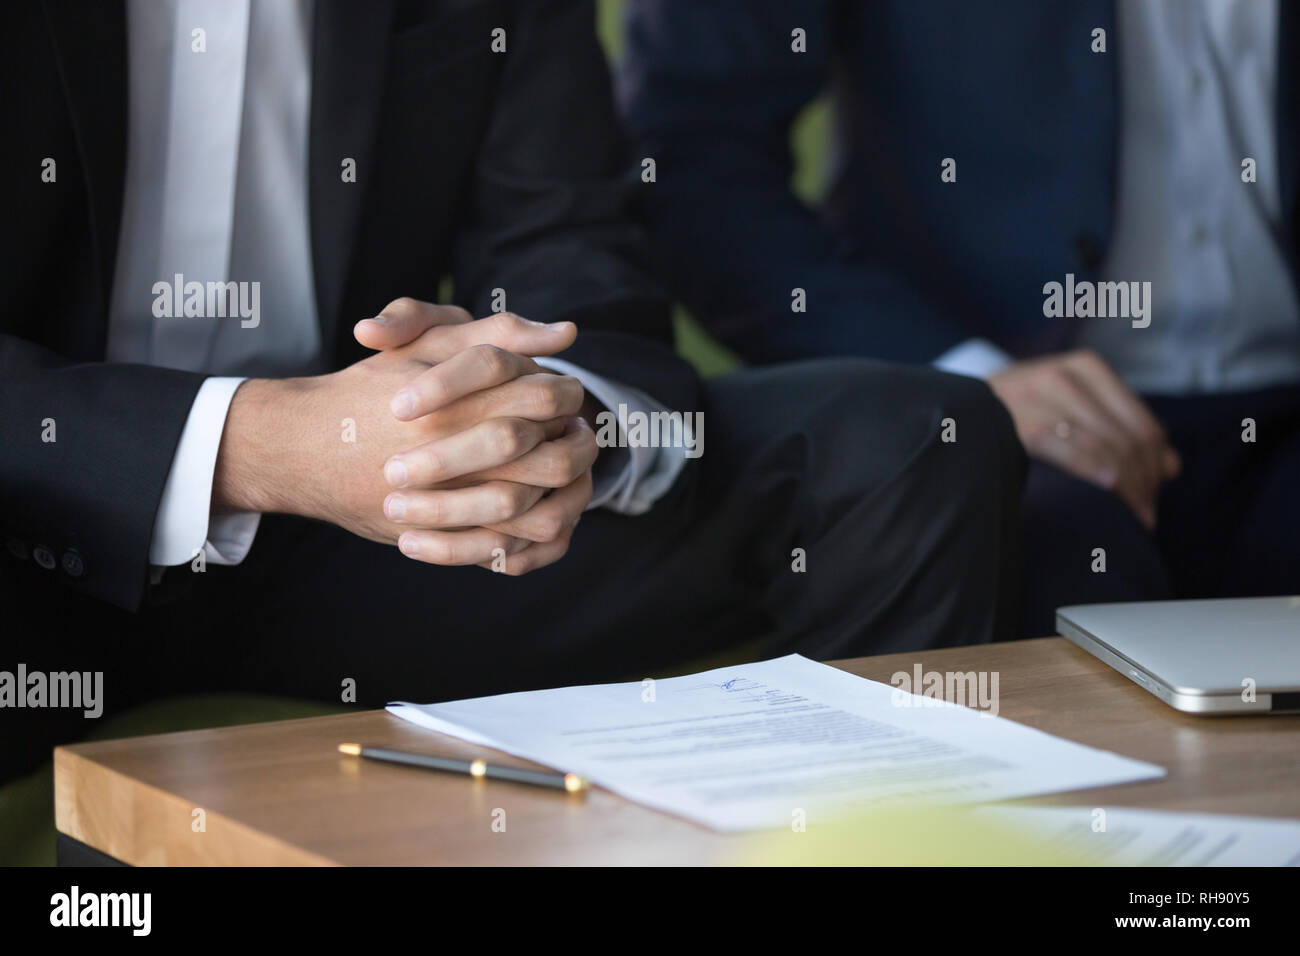 Clasped hands clenched together, businessman at negotiations focused on listening - Stock Image